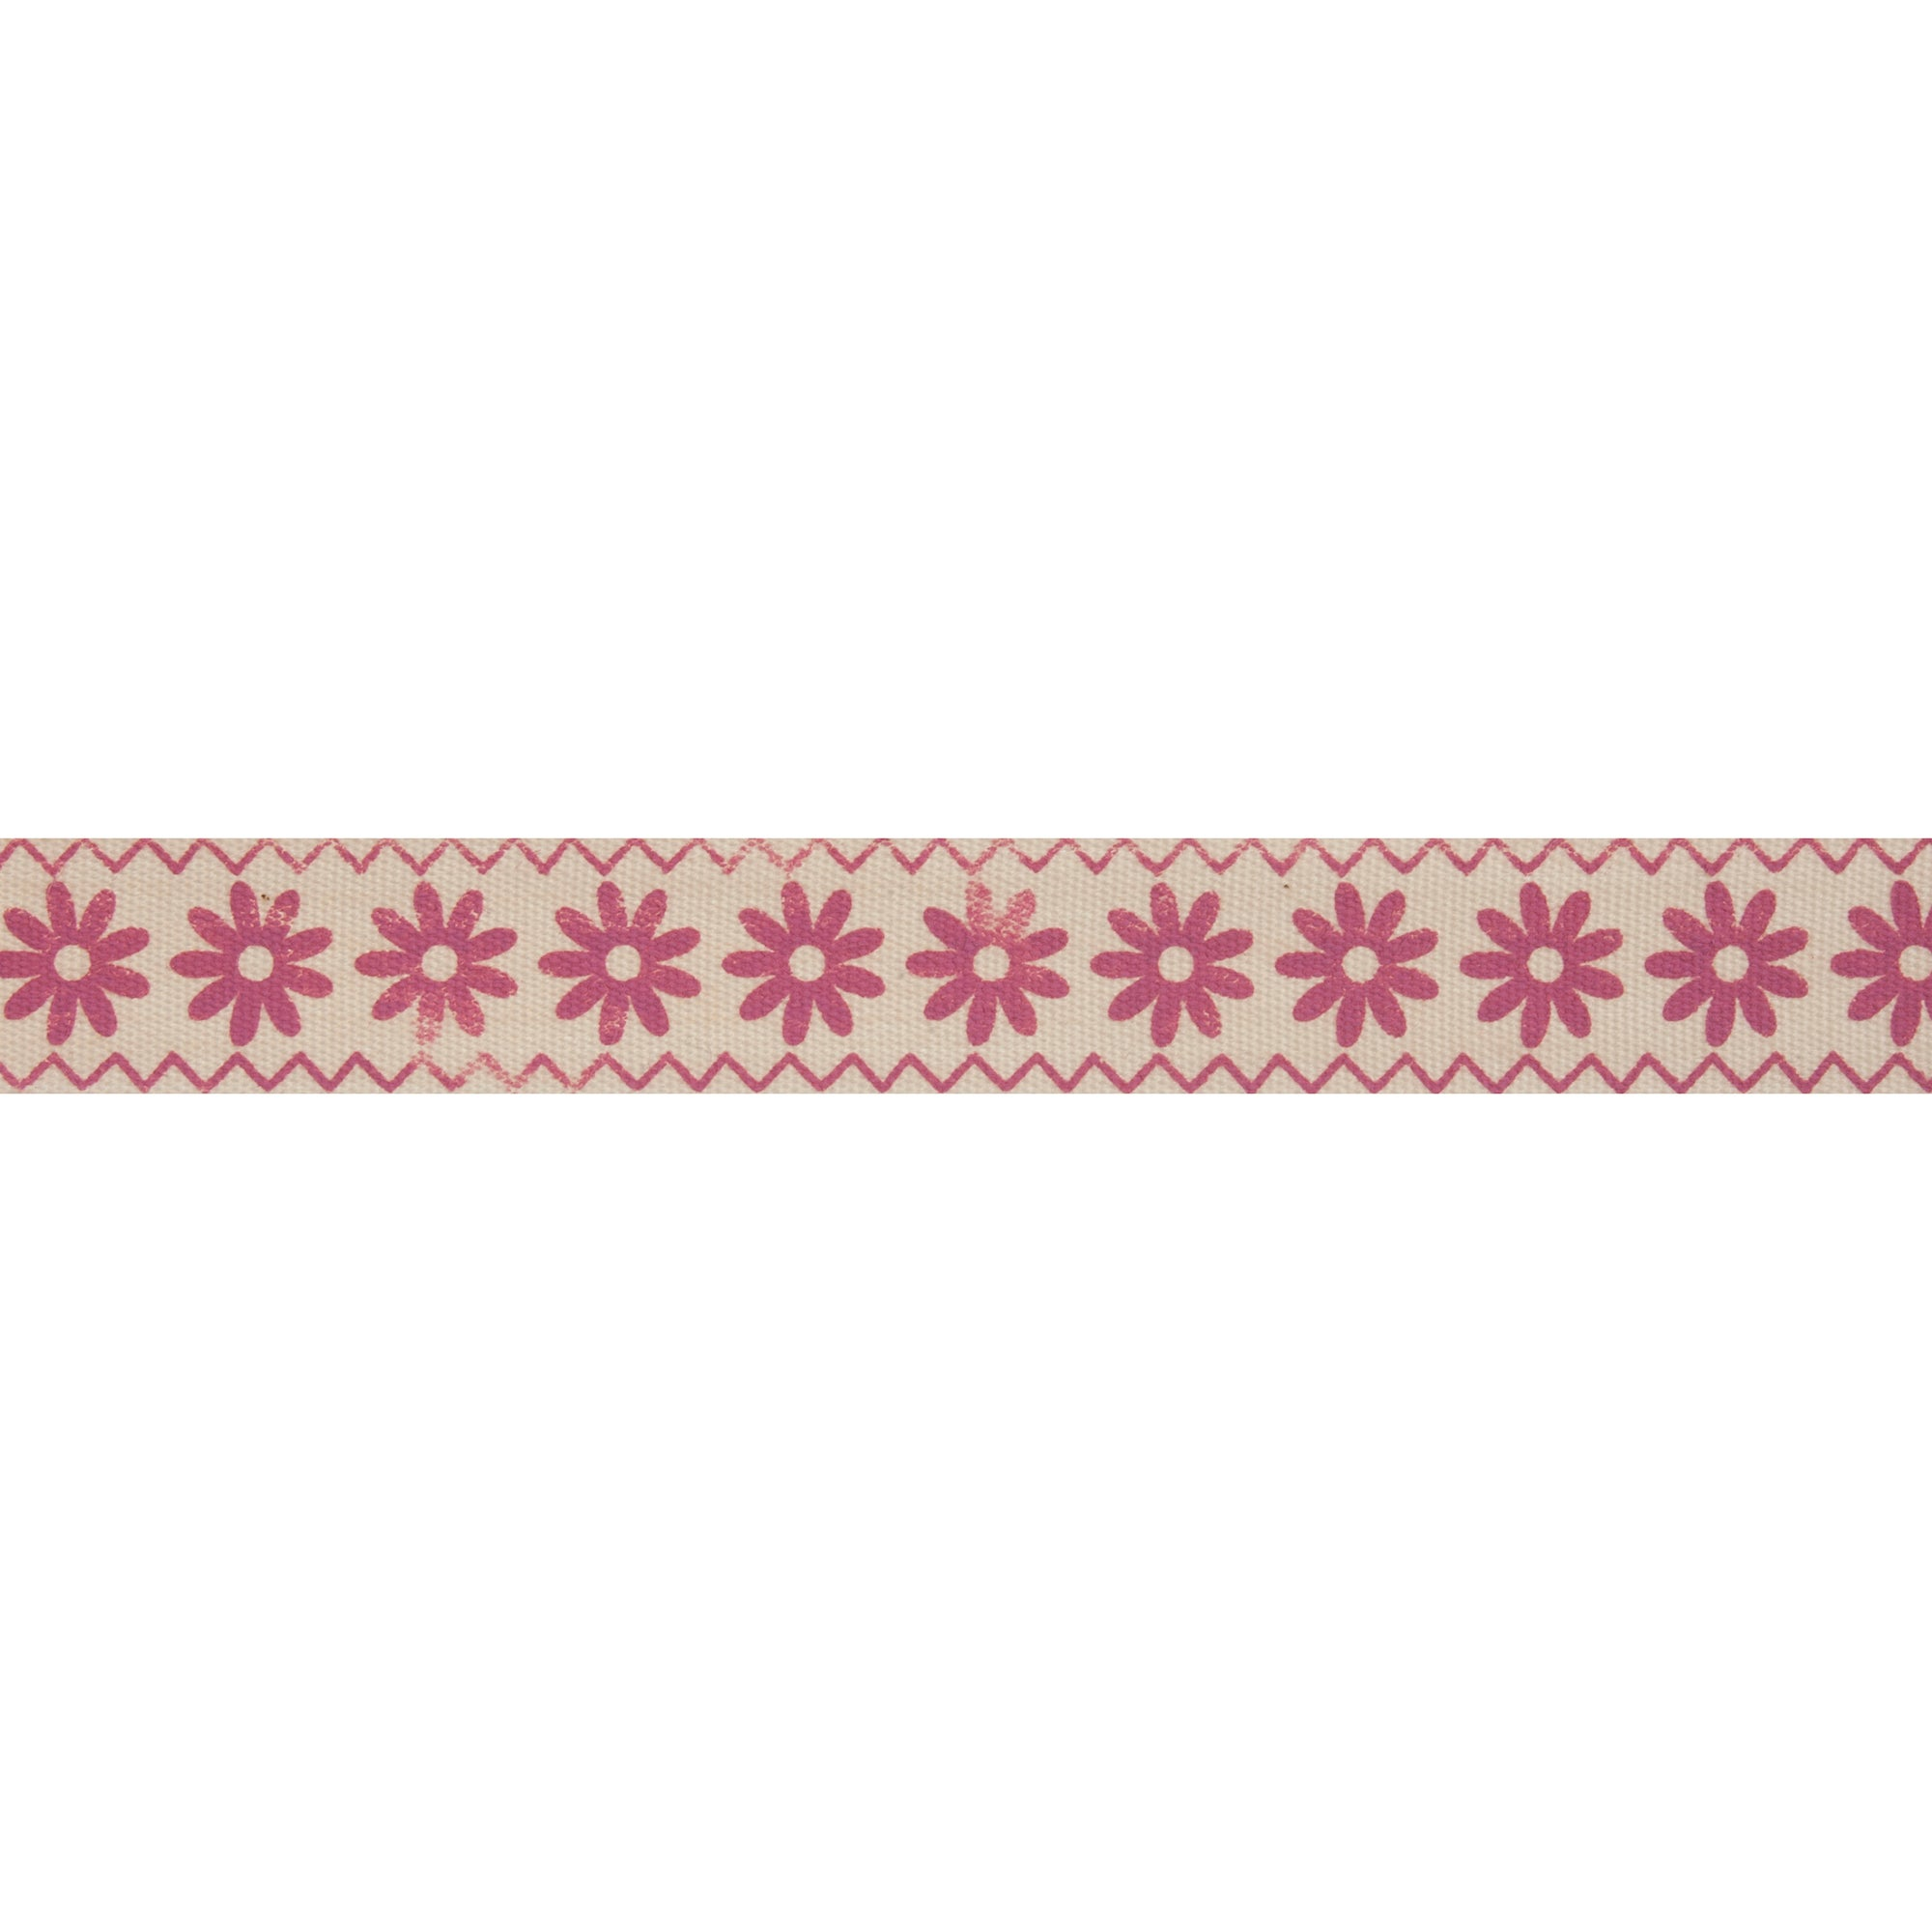 Bowtique Pink Flower Ribbon